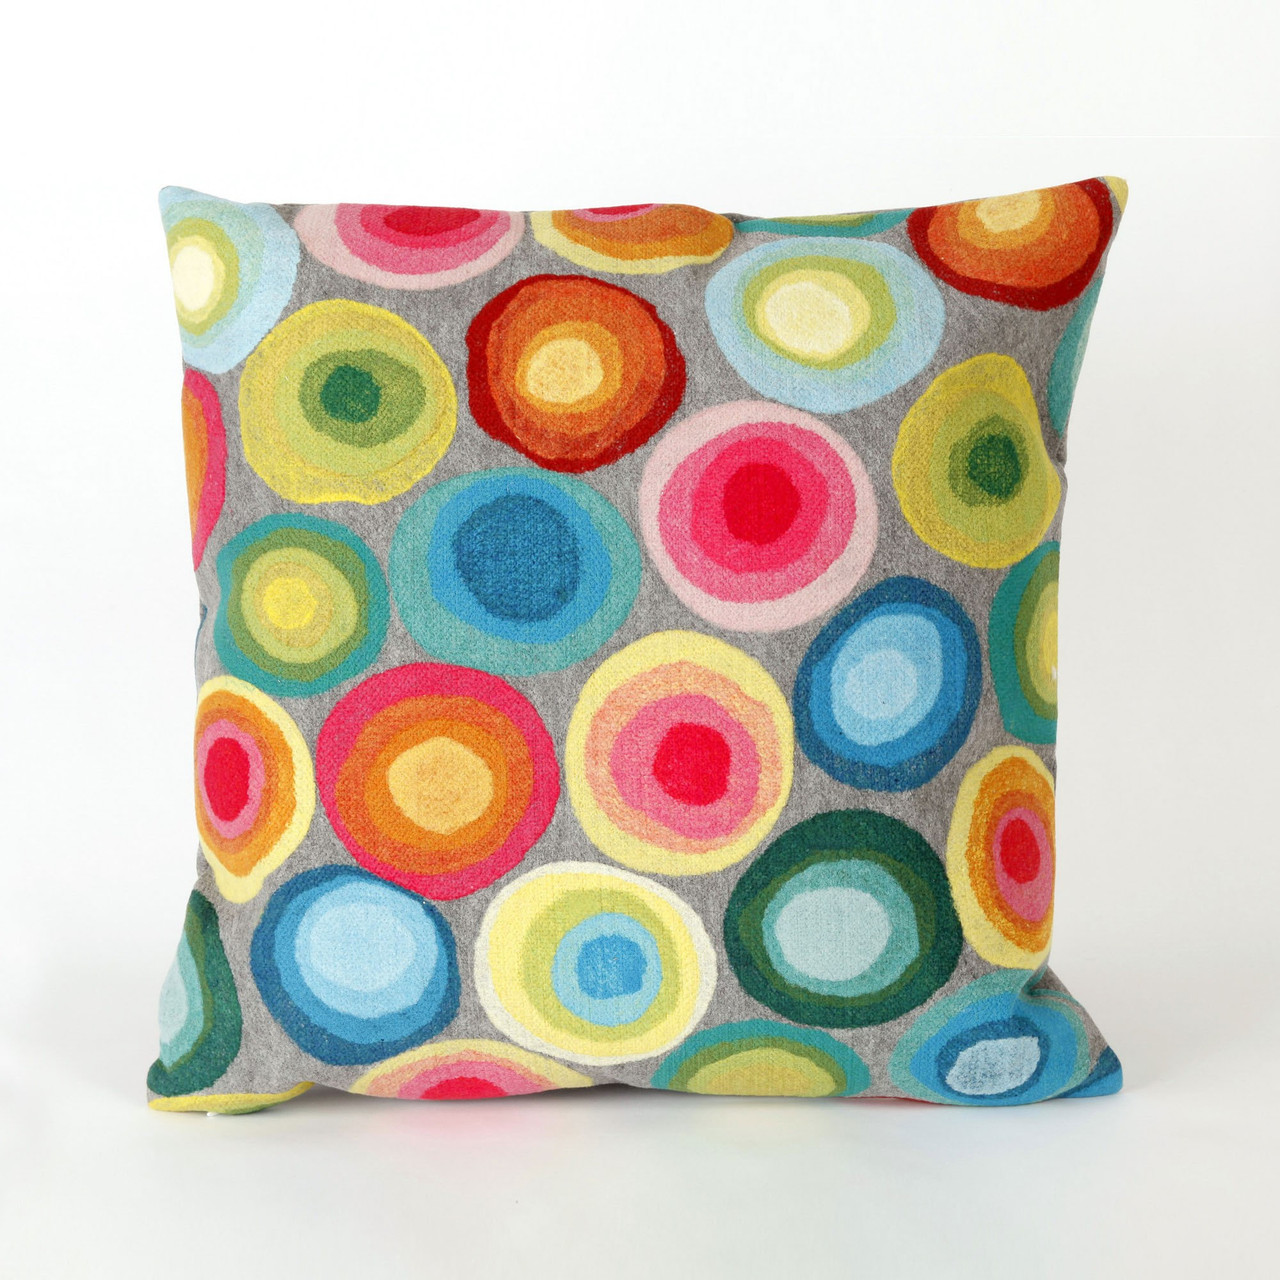 Visions II Multicolored Puddle Dots Indoor/Outdoor Throw Pillows - 2 Sizes Avail